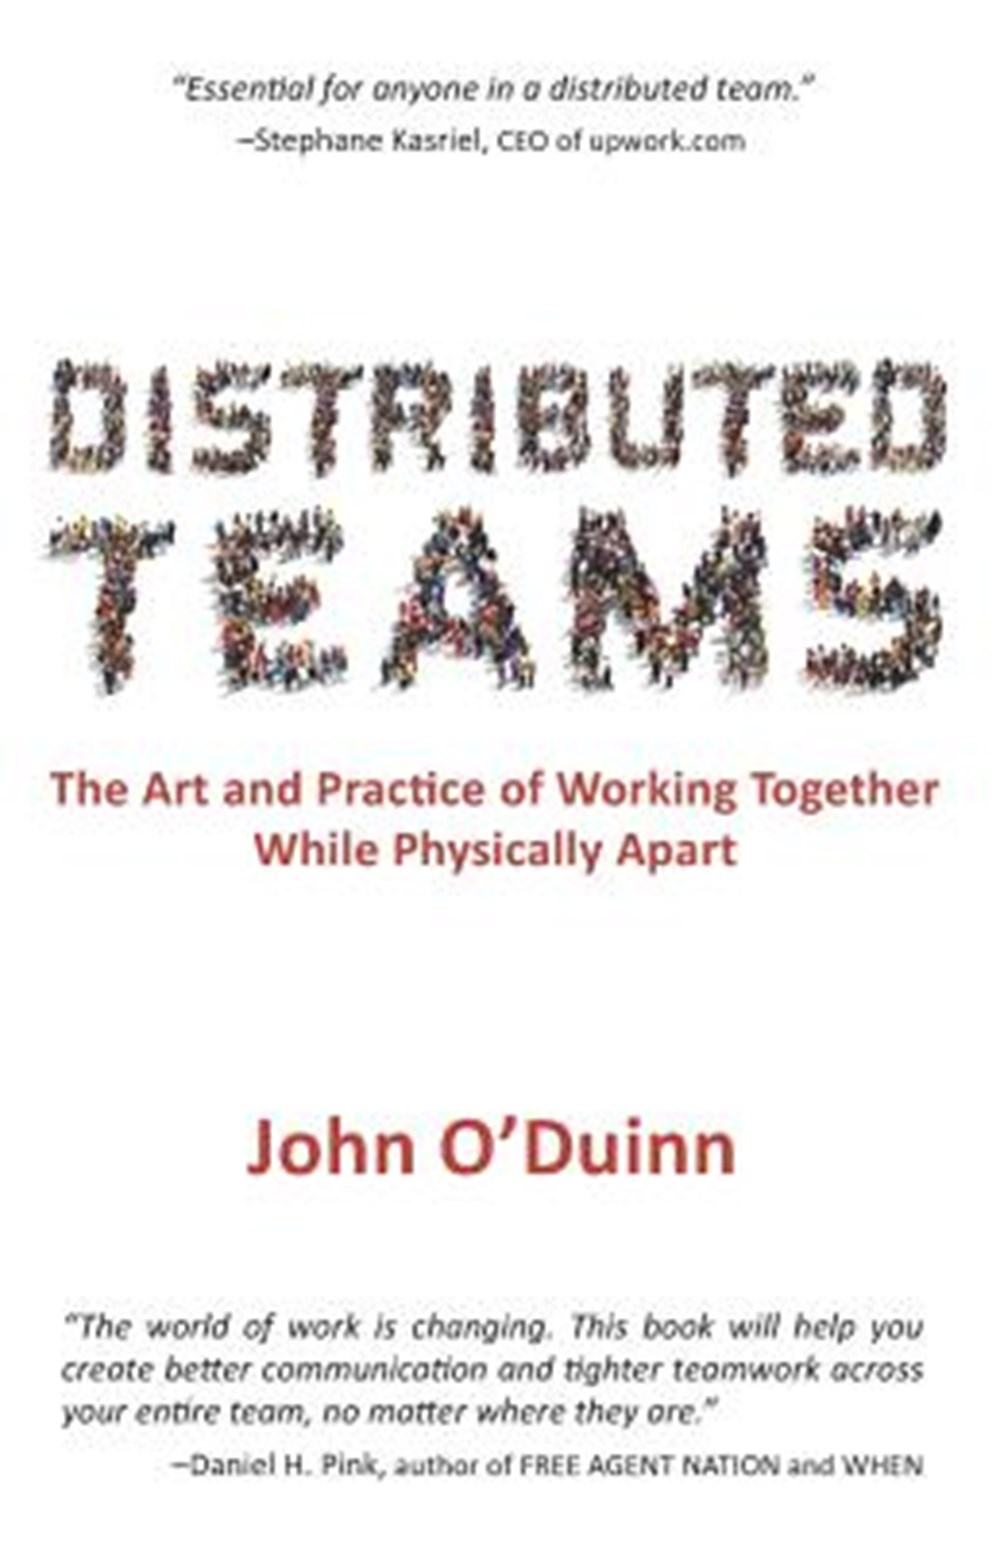 Distributed Teams The Art and Practice of Working Together While Physically Apart